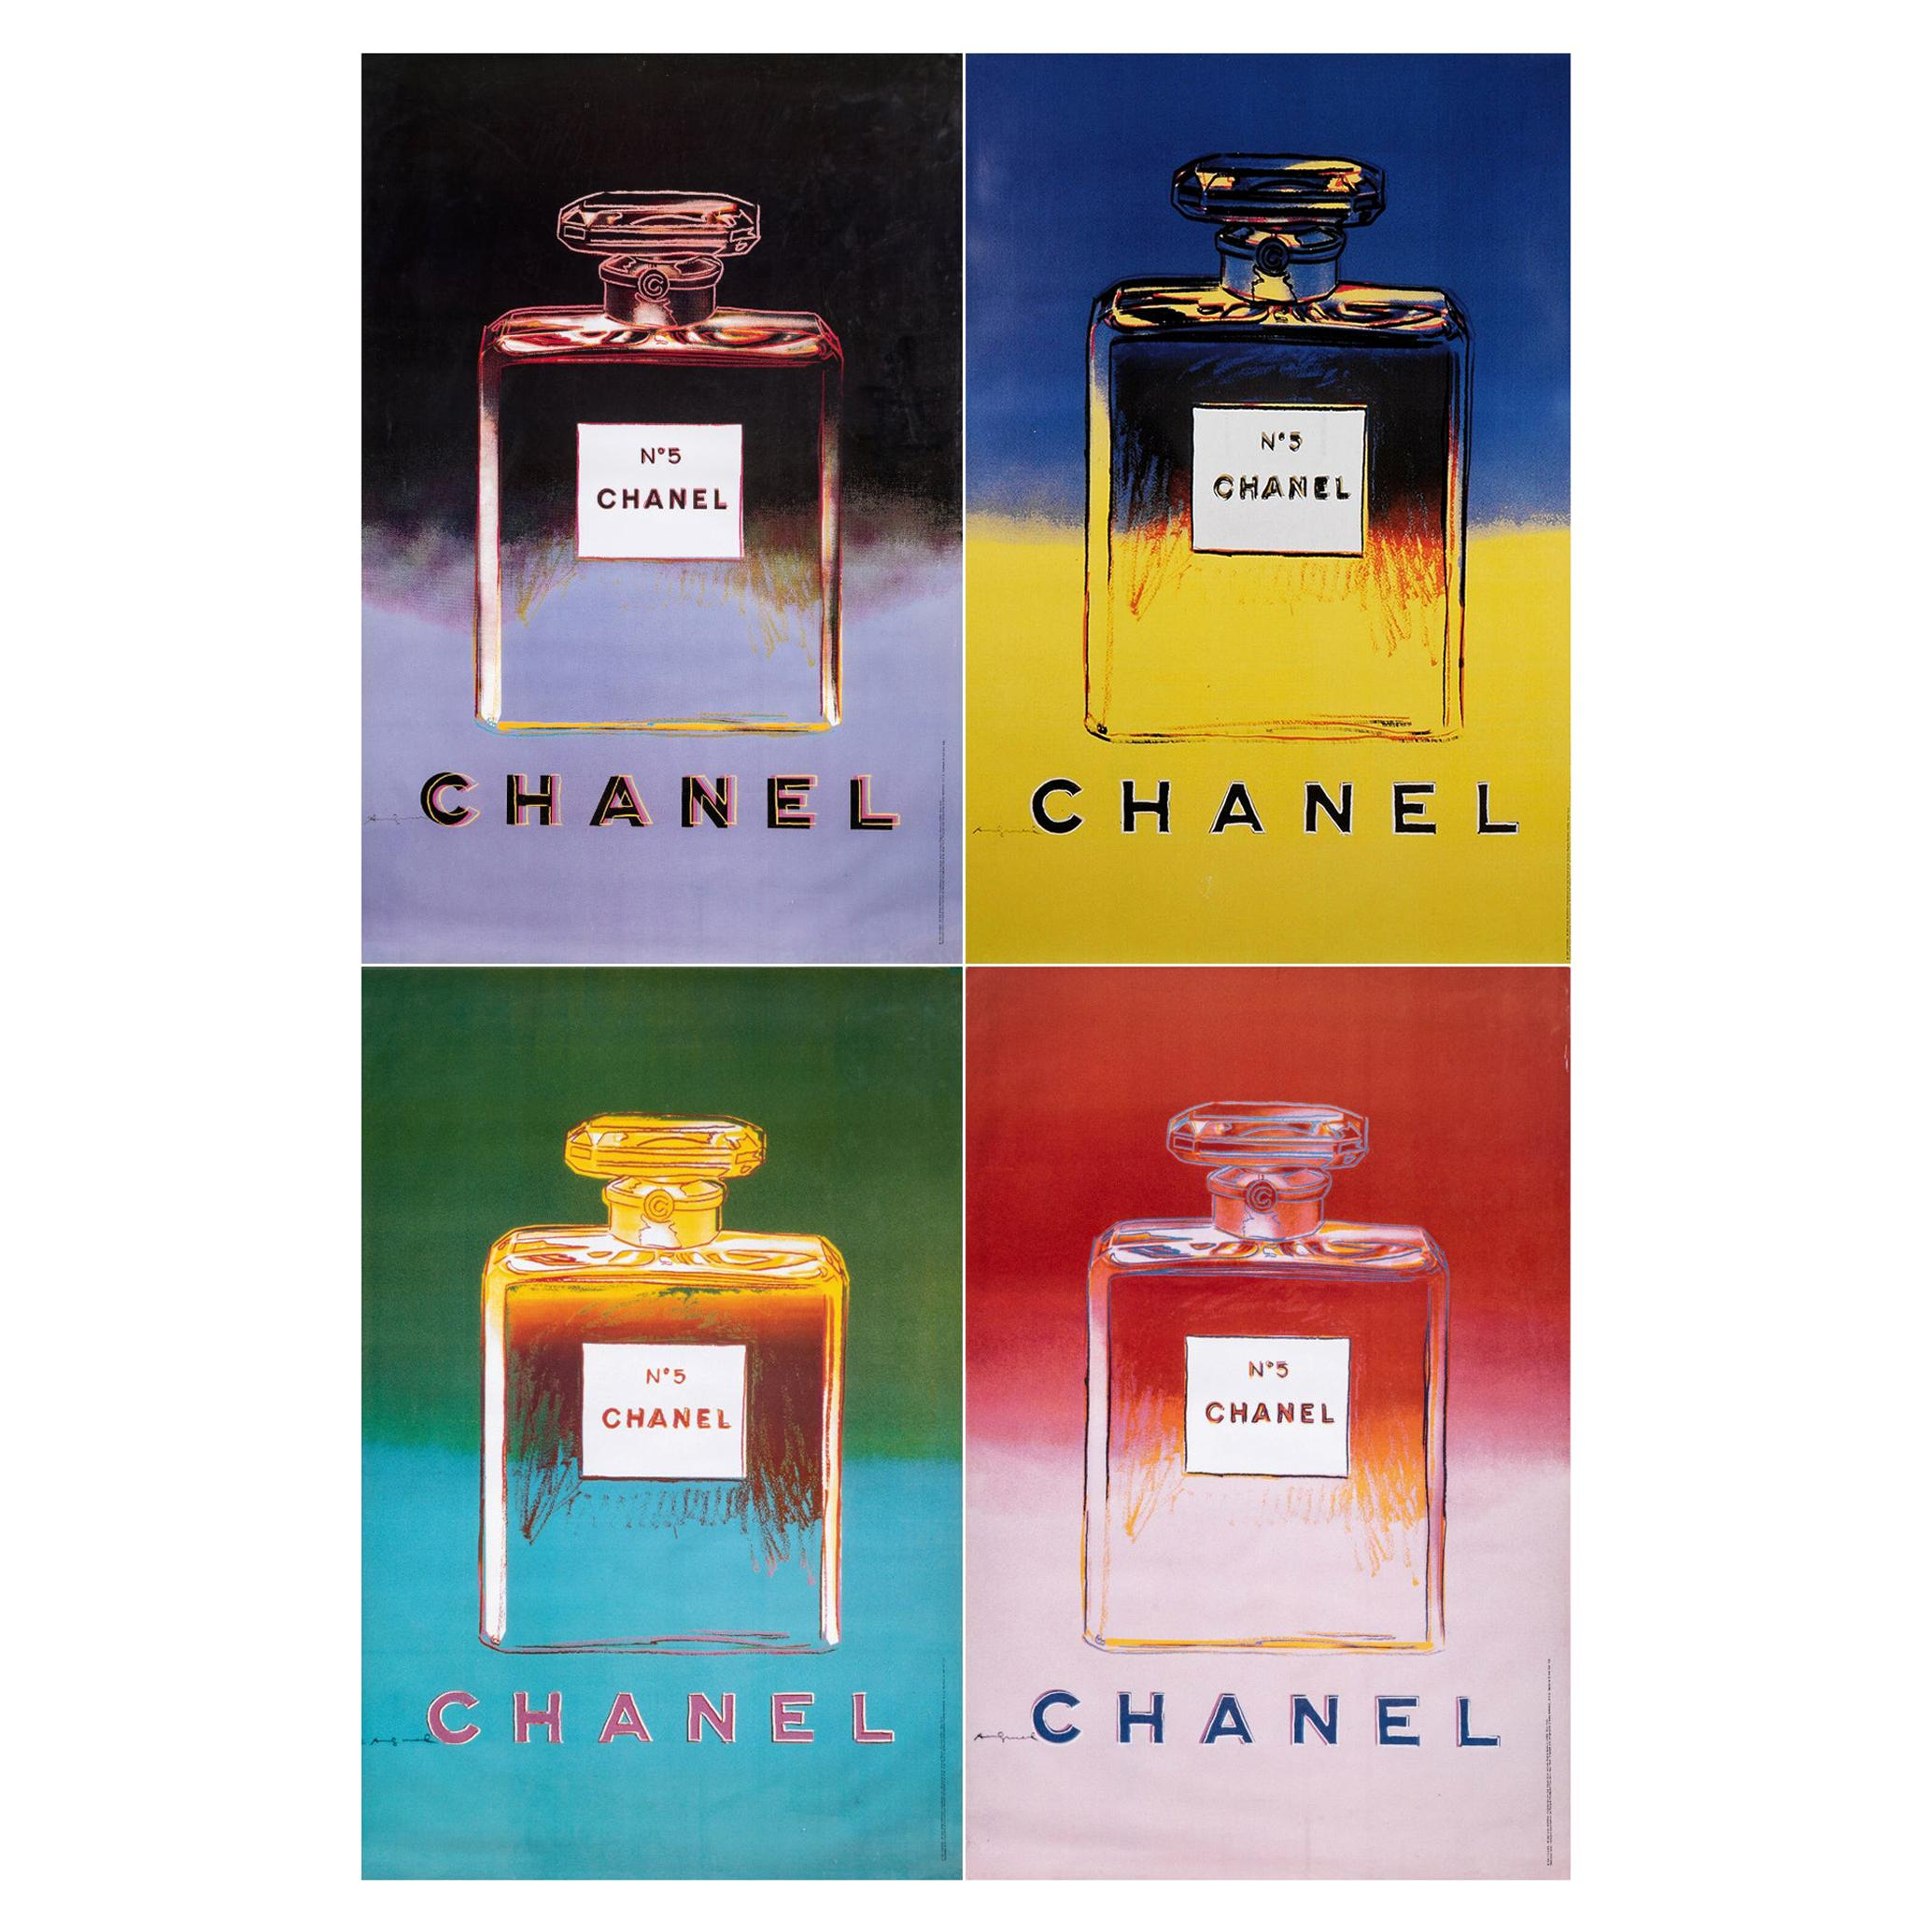 Complete Collection of Chanel Nº 5 Original Posters